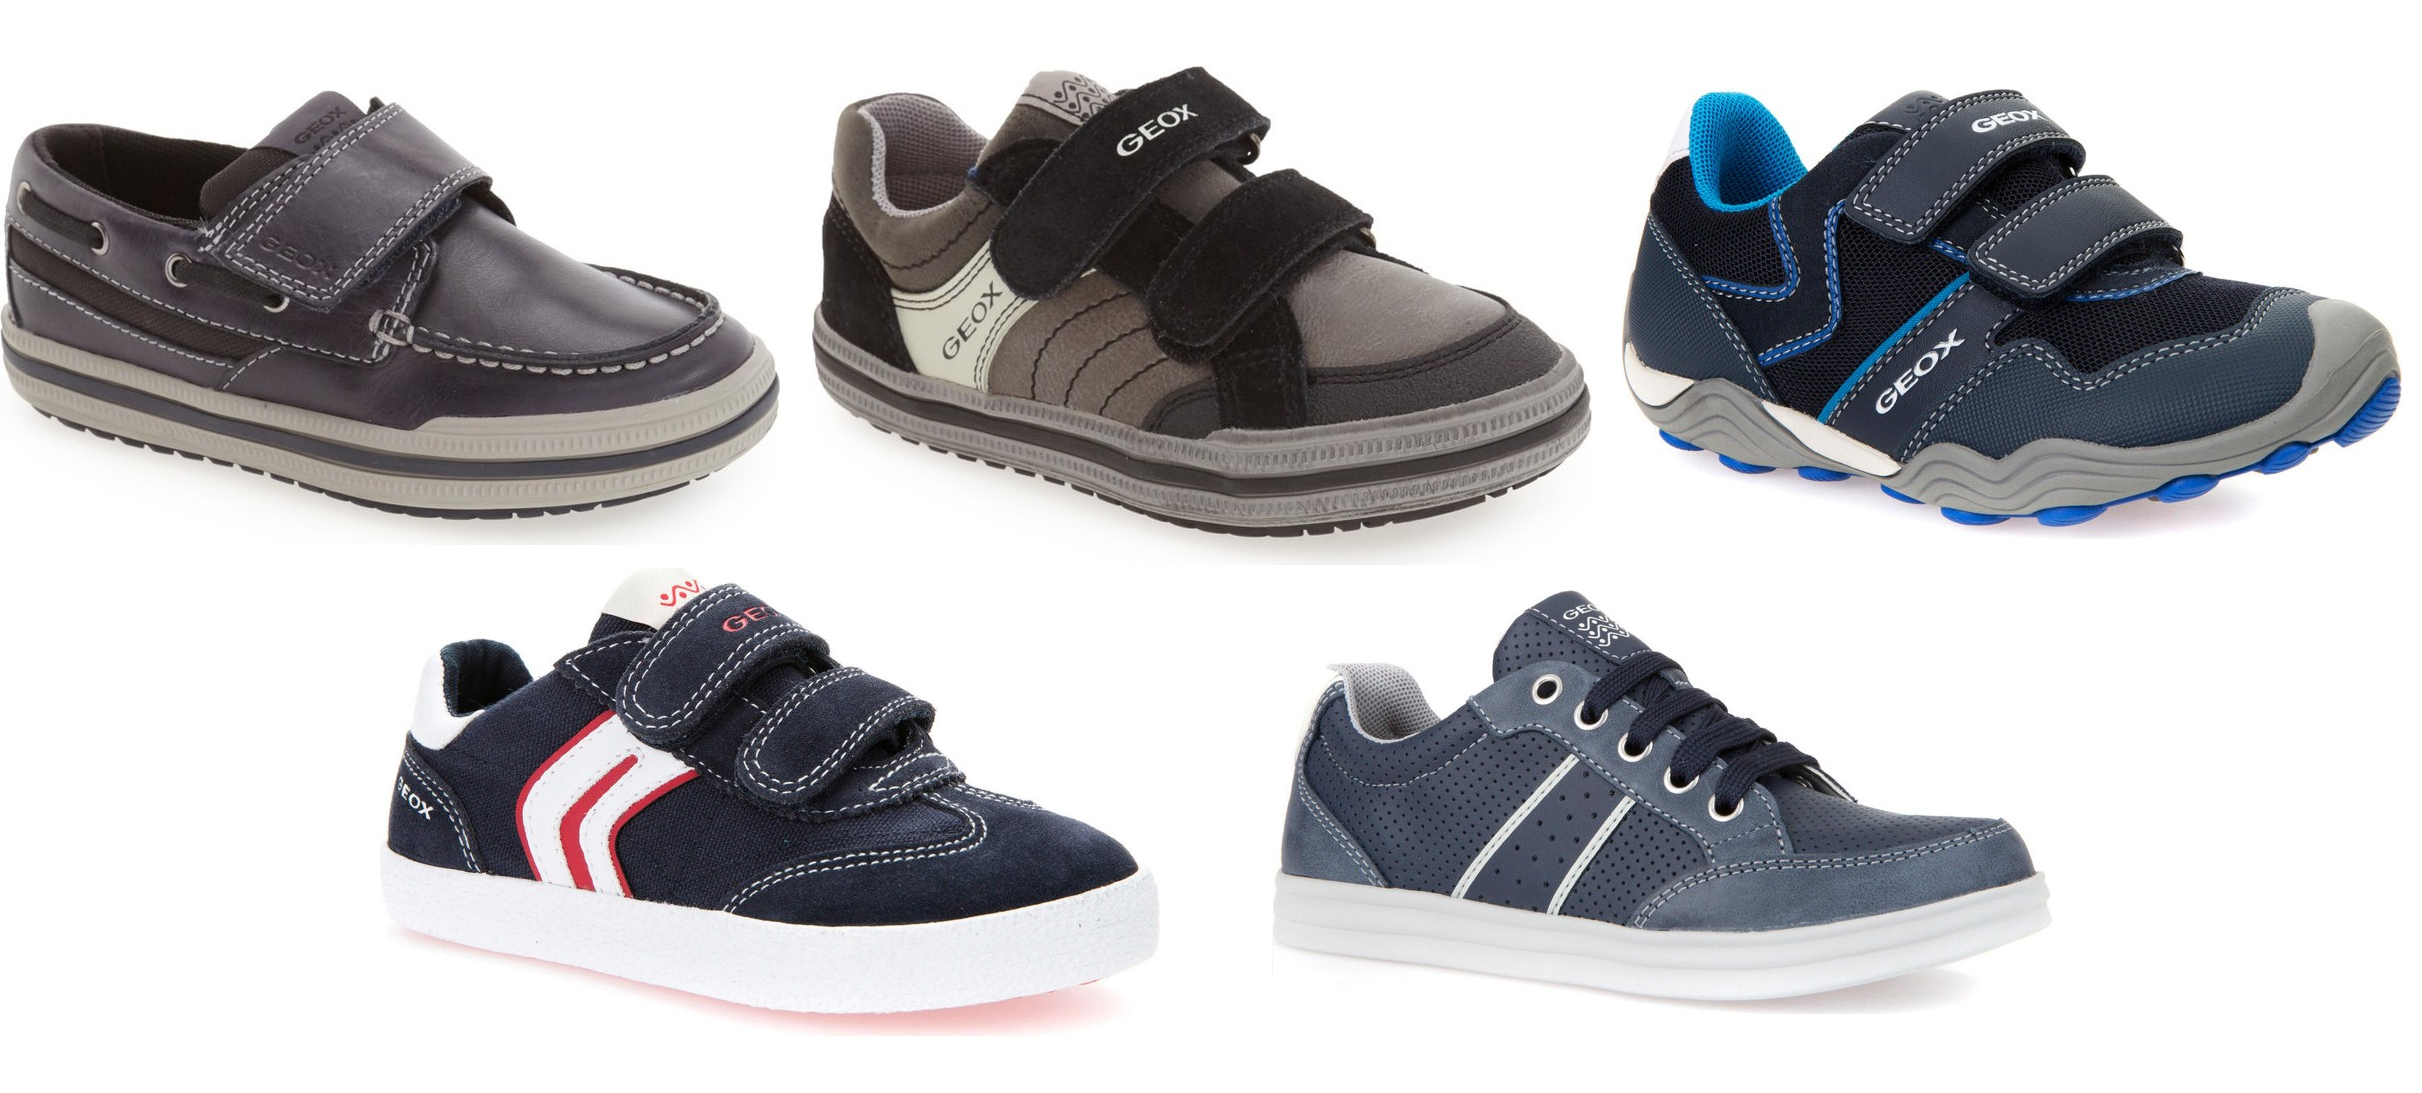 e3efaff02f Geox Boys Sneakers On Sale For As Low As $32.47 w/ Free Shipping On All  Orders!